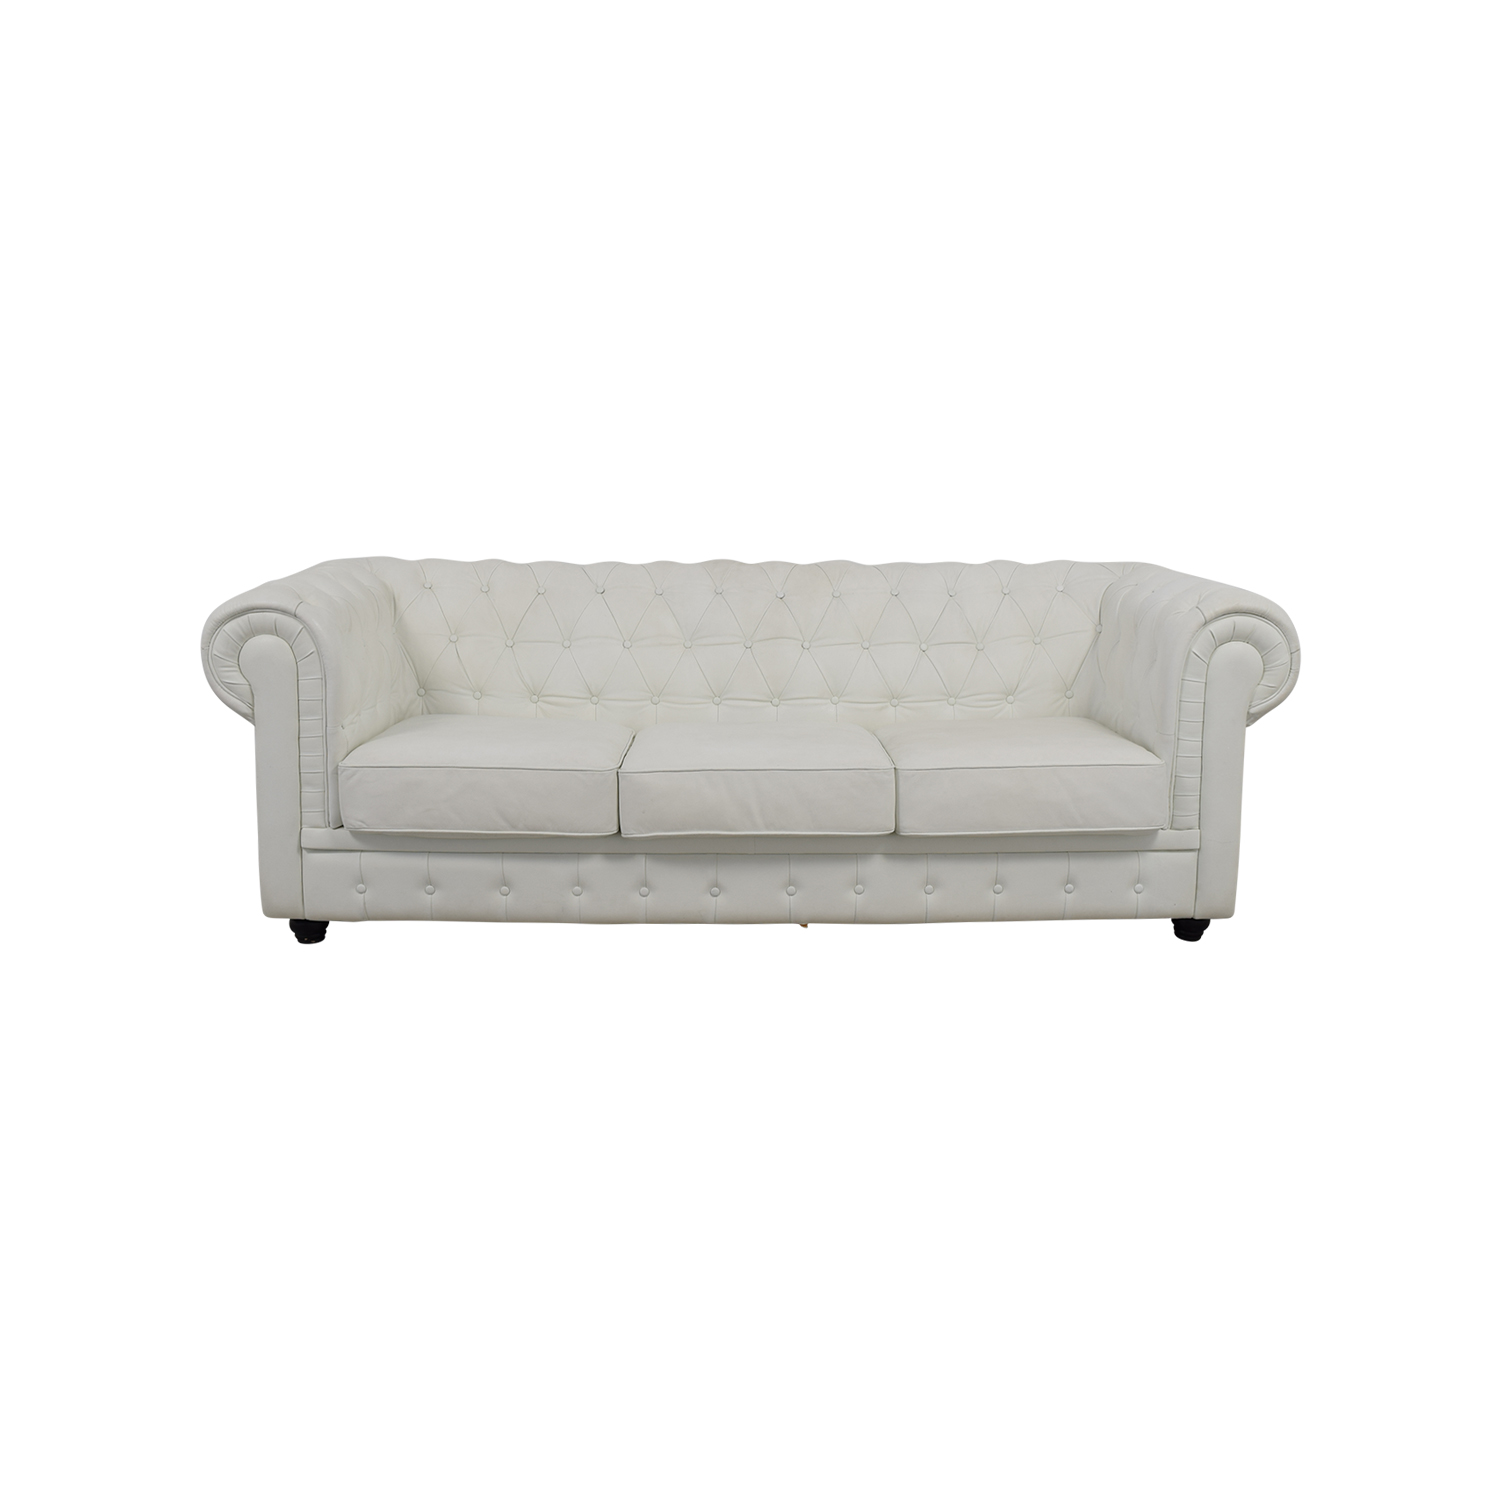 chesterfield sofa leather white best bed mattress replacement tufted good